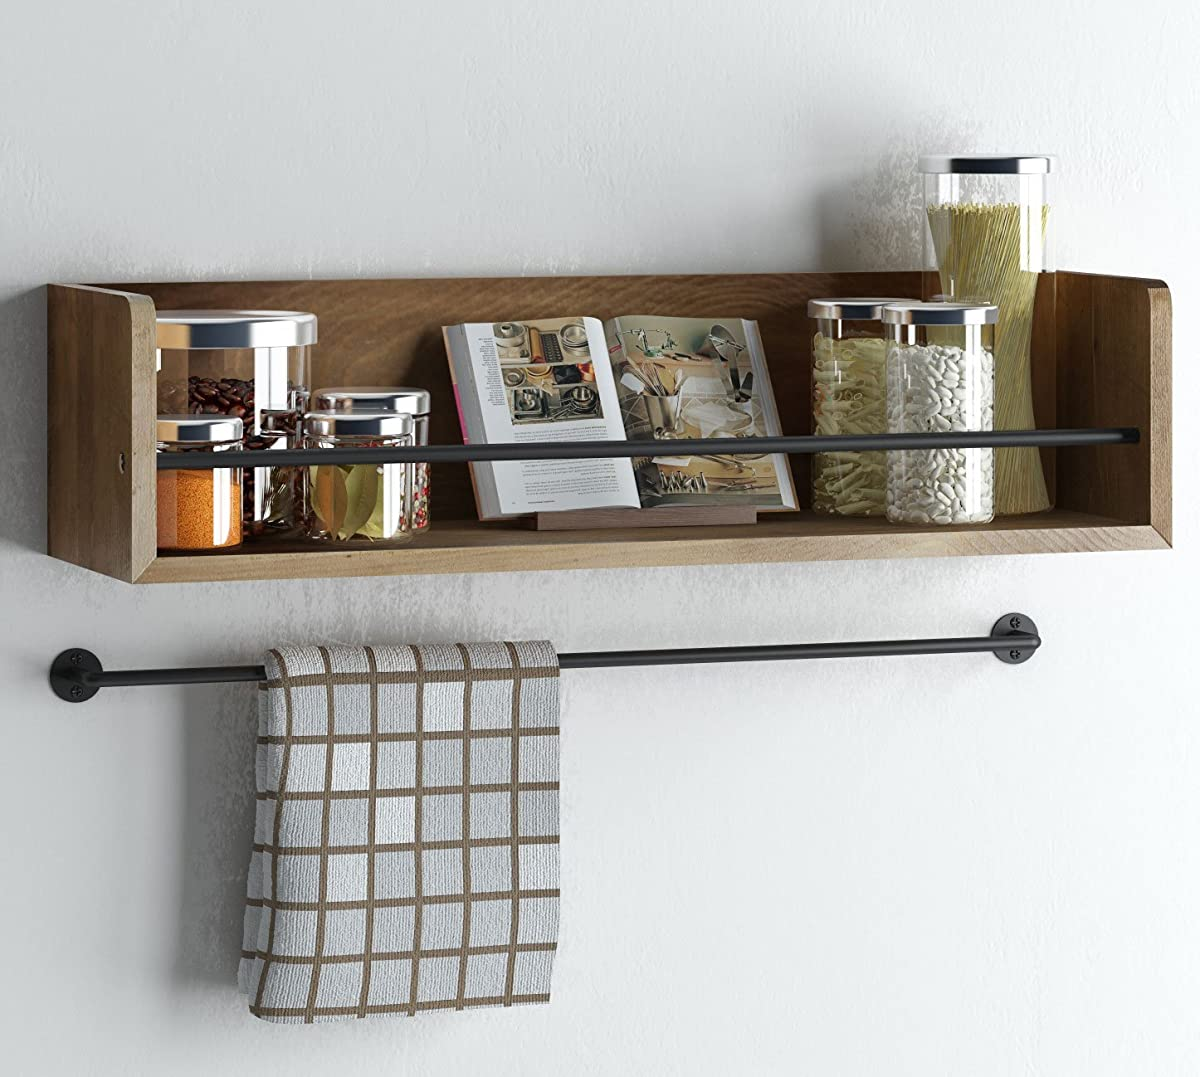 Rustic Kitchen Wood Wall Shelf with Metal Rail Also Multi Use Can Be Used As a Spice Rack Living Room or Bedroom Wall Shelf , Walnut Stained (20, Walnut)